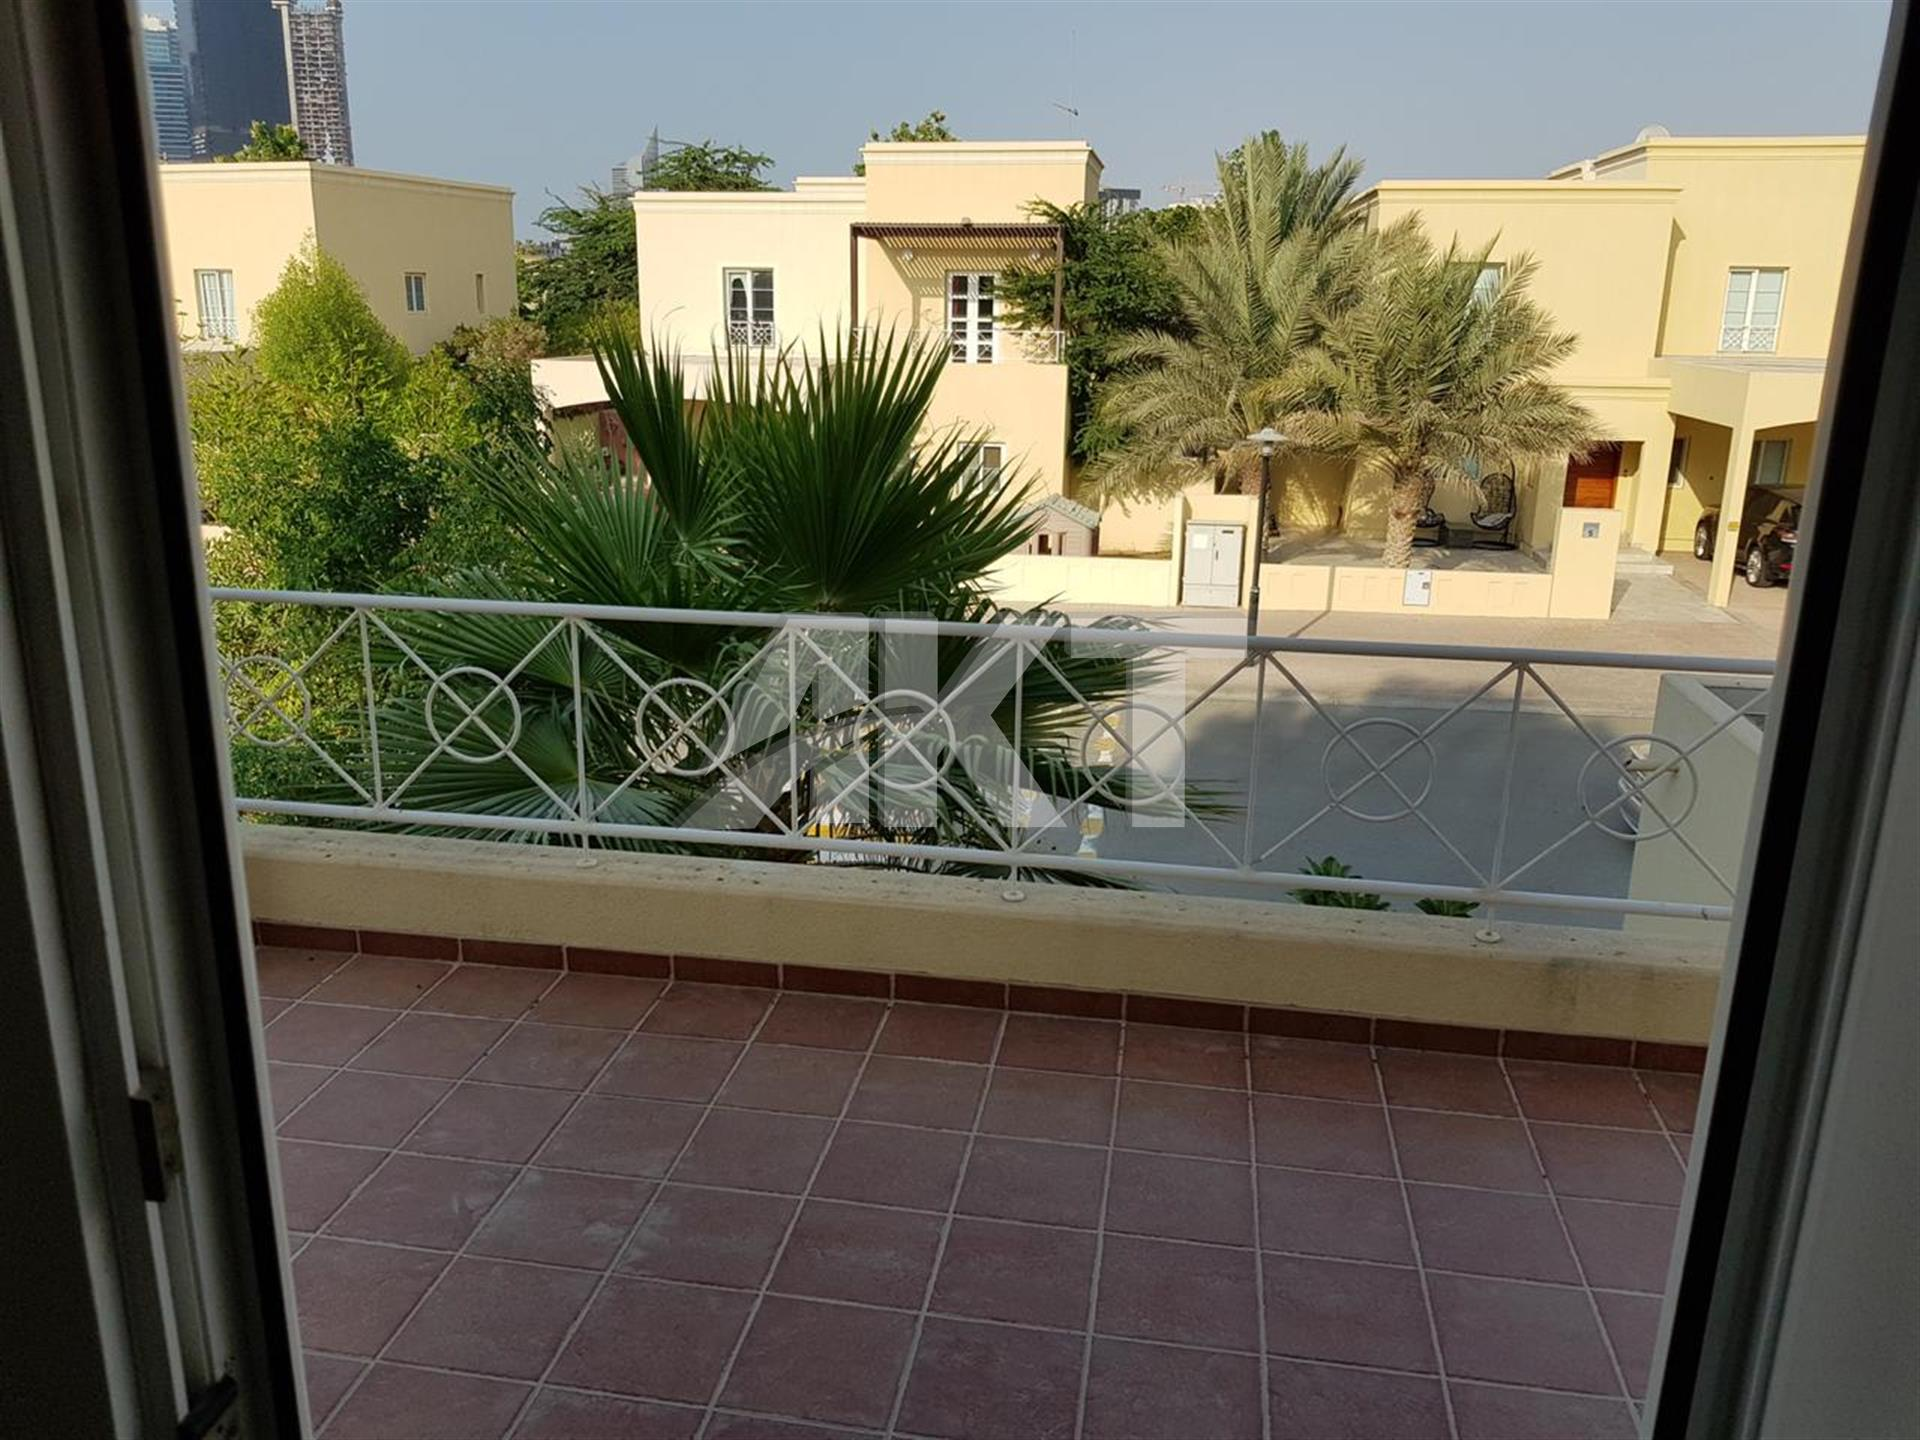 160 K / 3 Beds + Maid+ Study / Park View / Meadows 1